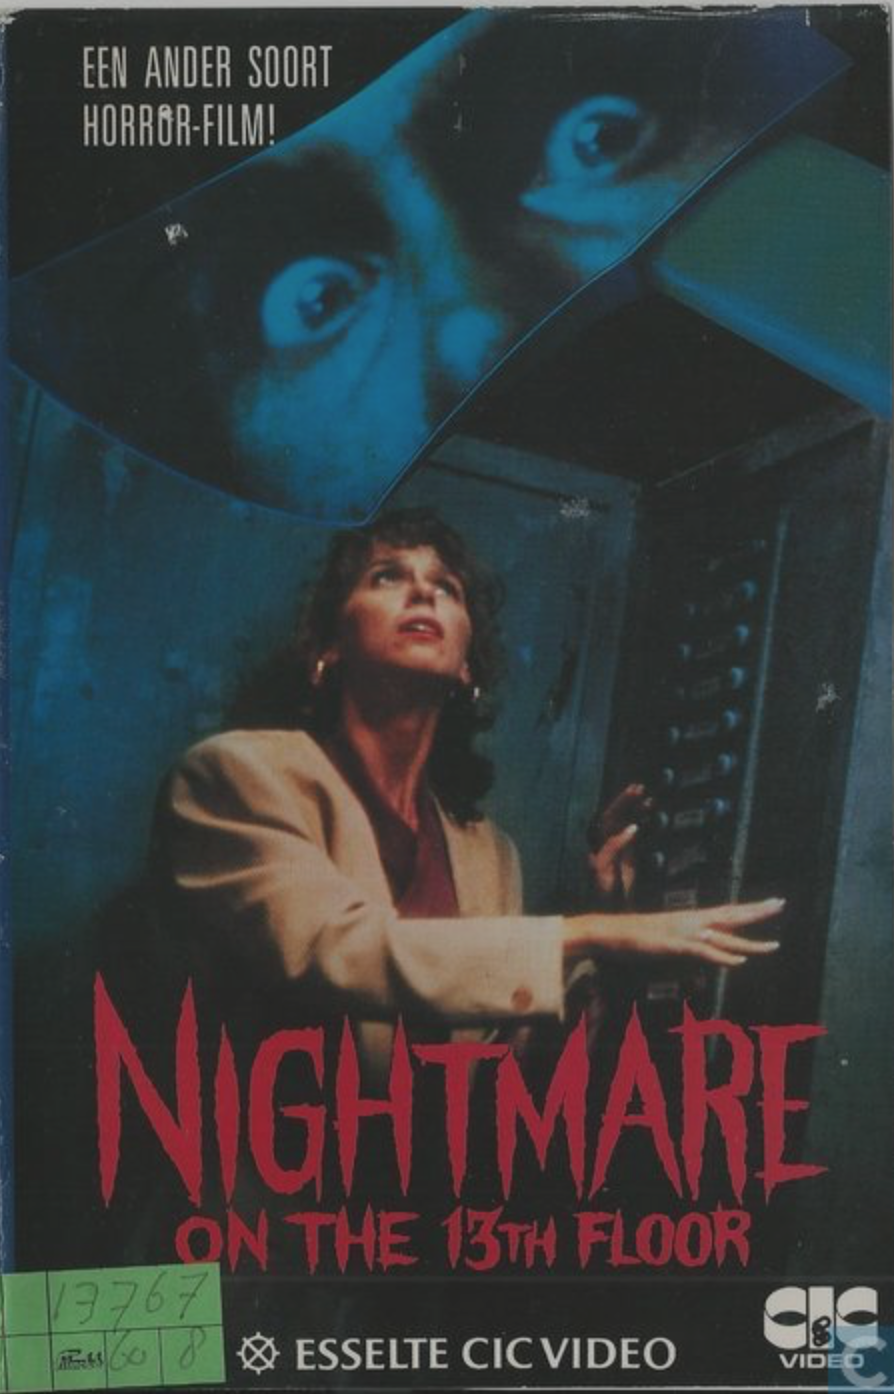 Tape Freaks: Made for TV Movies: Nightmare on the 13th Floor